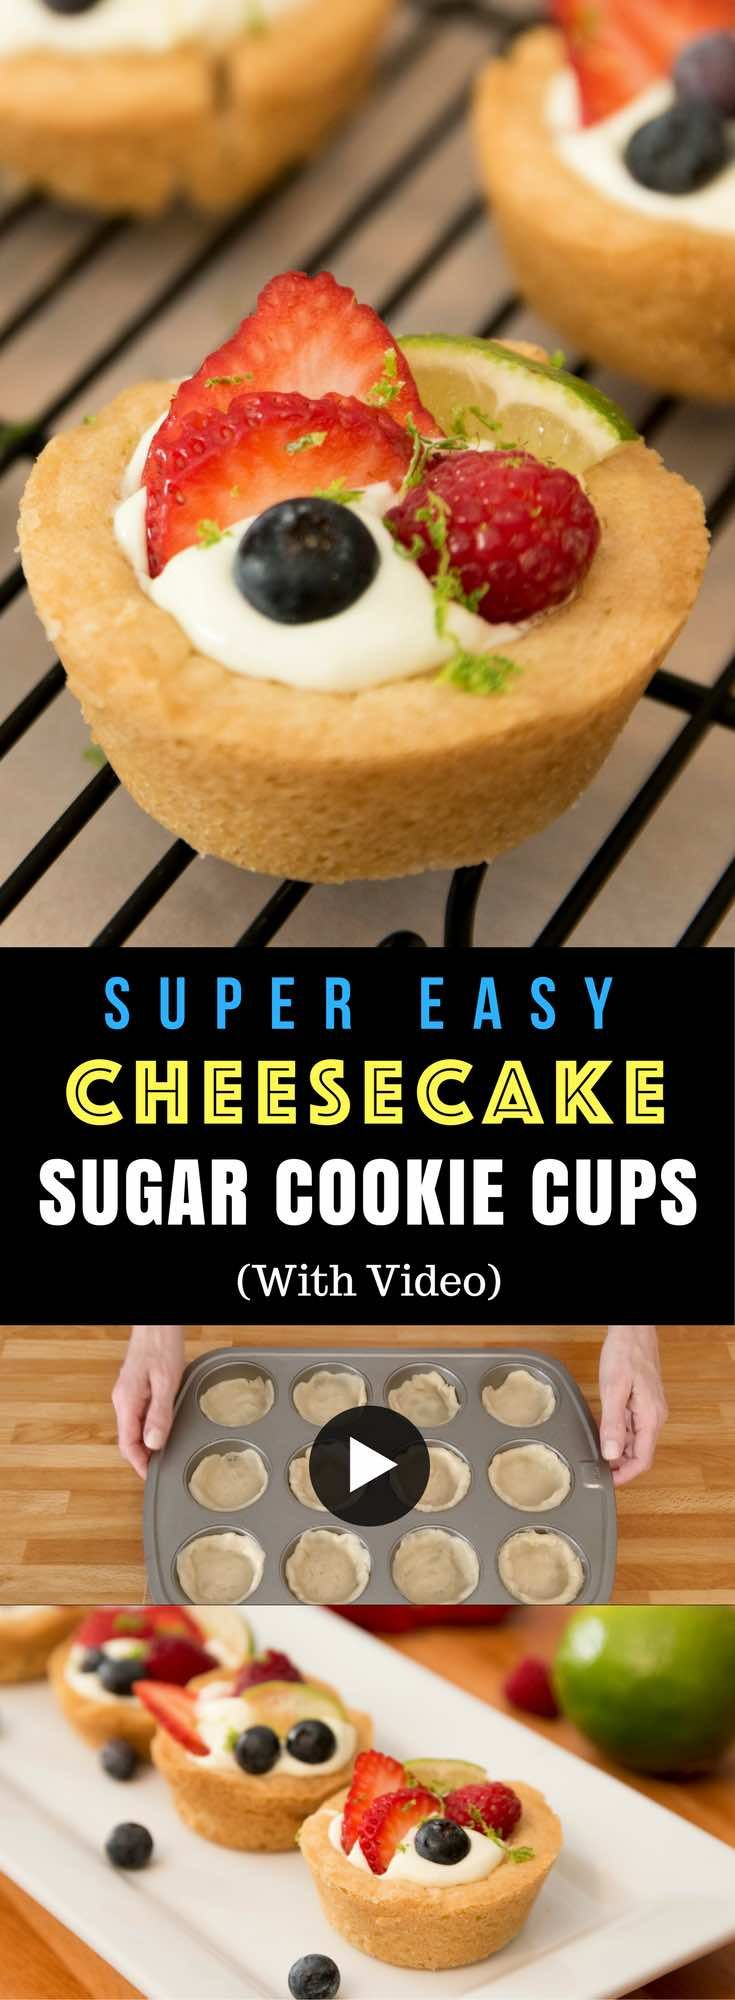 Mini Cheesecake Sugar Cookie Cupcakes – the most unbelievably delicious key lime pie cheesecake filling all nestled in easy soft and chewy sugar cookie crusts. All you need is only a few simple ingredients: Pillsbury sugar cookie dough, cream cheese, key lime greek yogurt, lime, vanilla extract, lime zest, strawberry, blueberry and raspberry. Crowd pleasing, make ahead dessert. Quick and easy, vegetarian. Video recipe.   tipbuzz.com